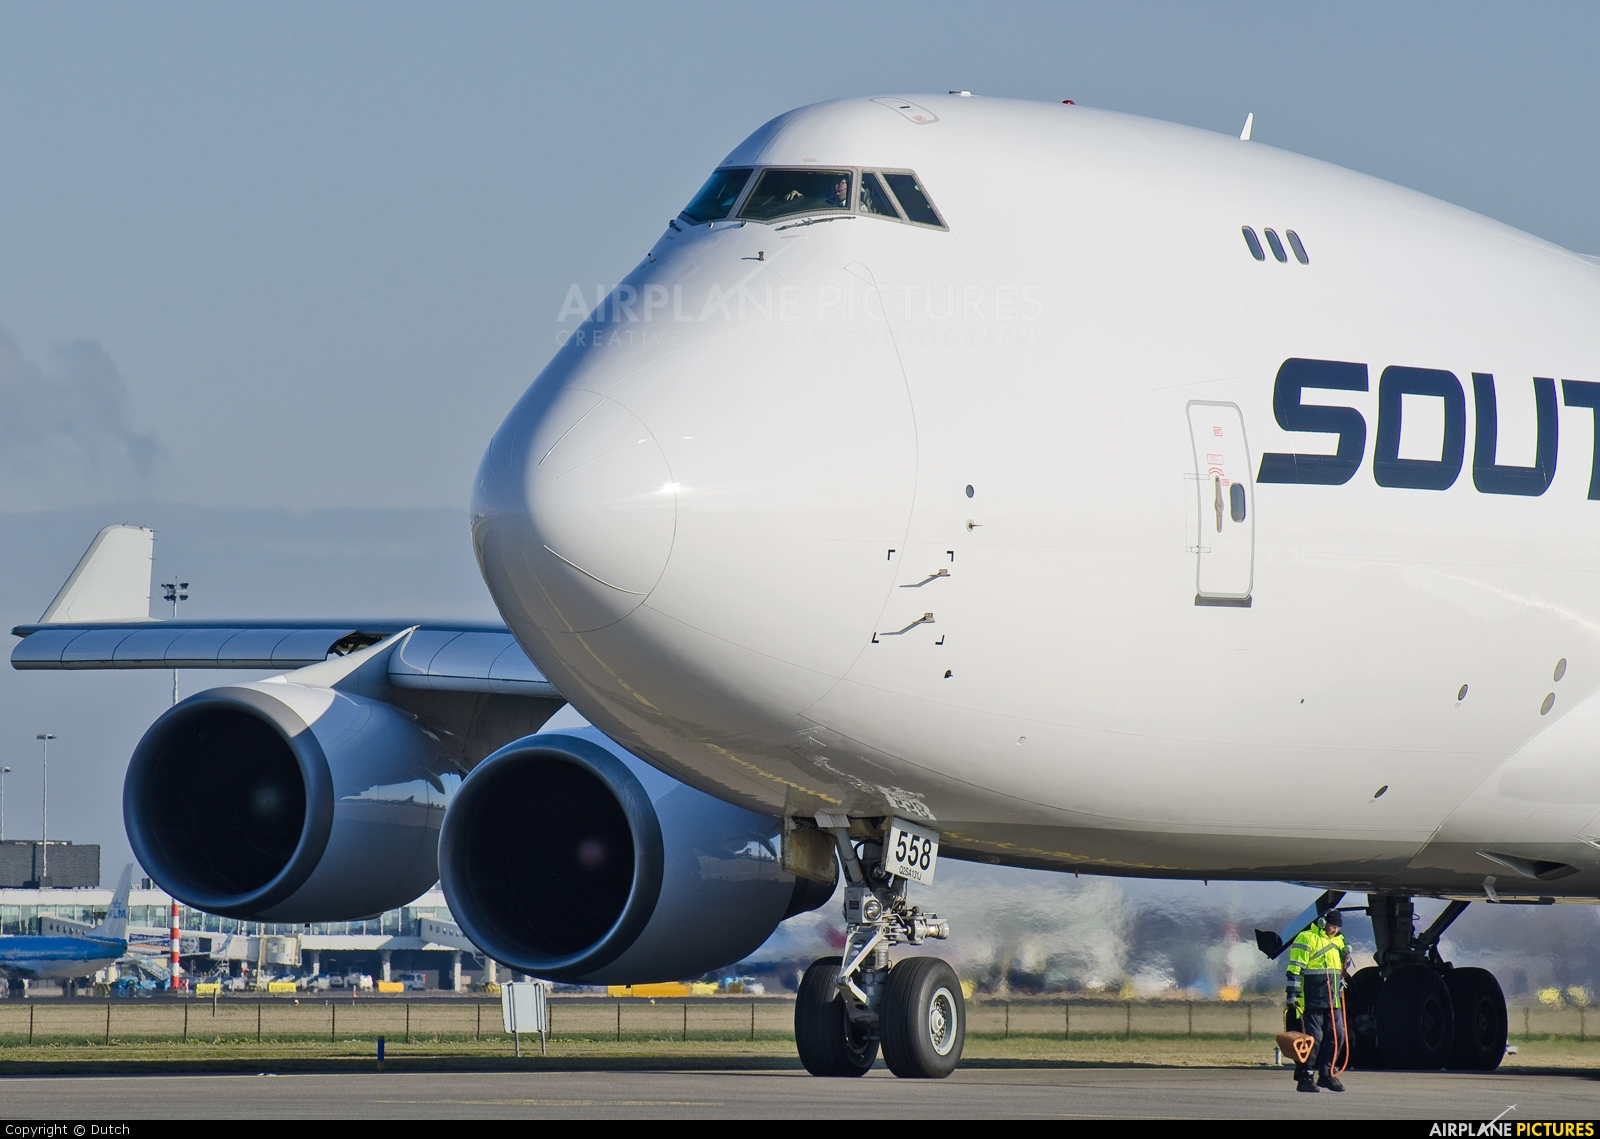 Southern Air Transport N558CL aircraft at Amsterdam - Schiphol